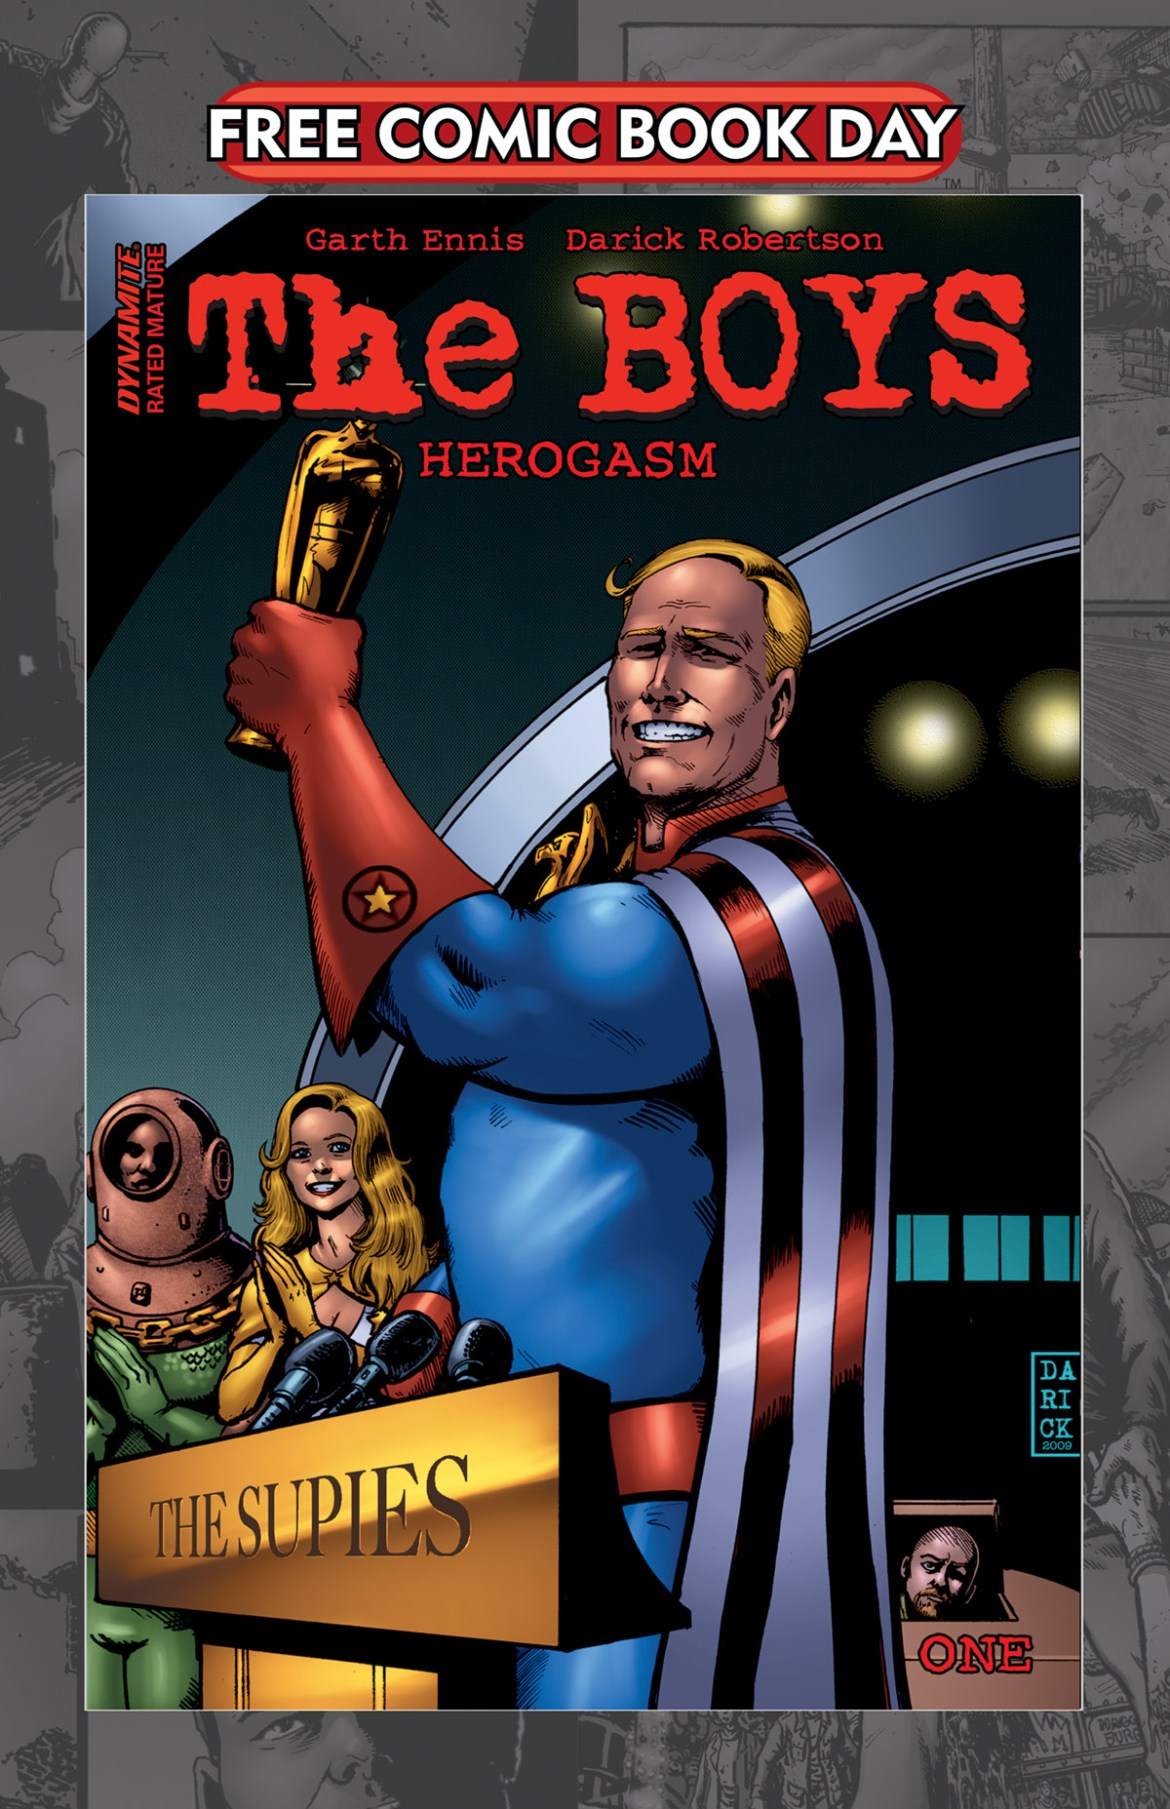 FCBD21_SILVER_Dynamite_The-Boys-Herogasm-1 Complete Free Comic Book Day 2021 comic book line-up announced